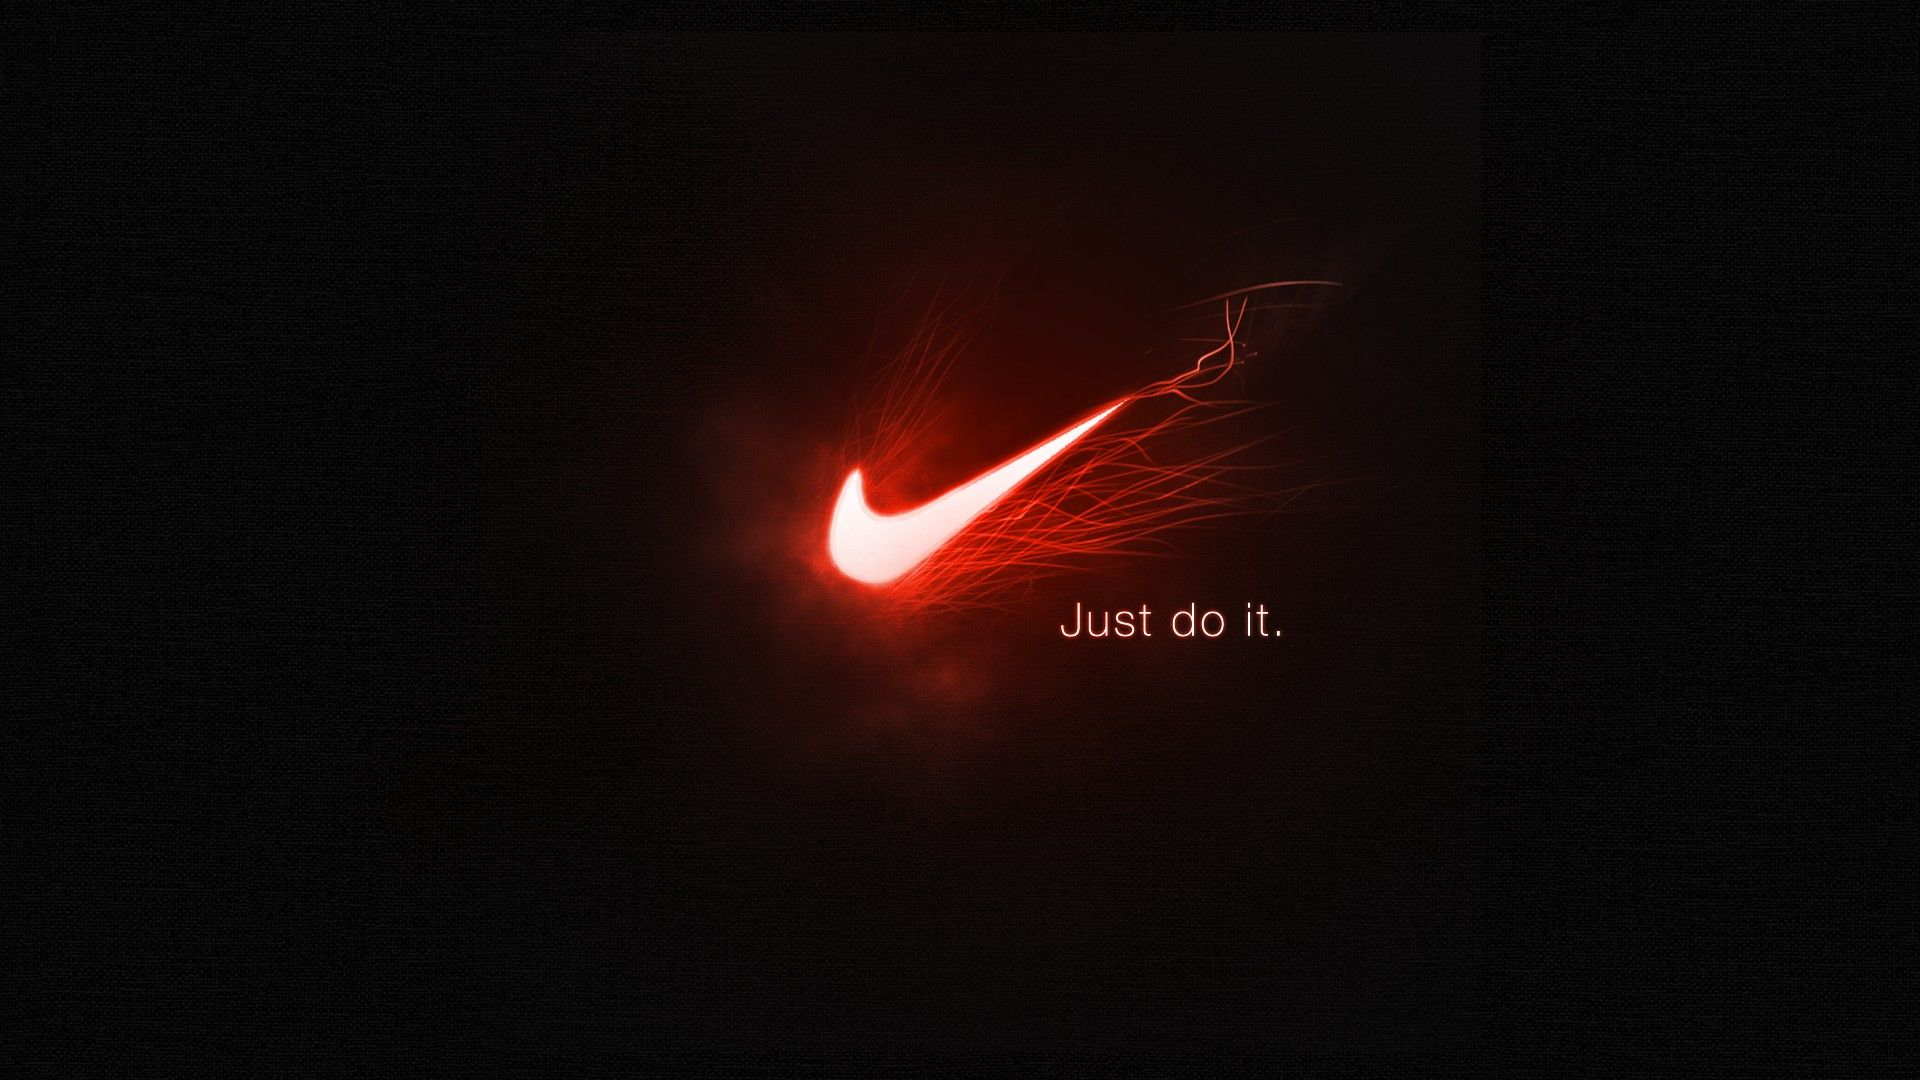 Just Do It Wallpaper Page 1